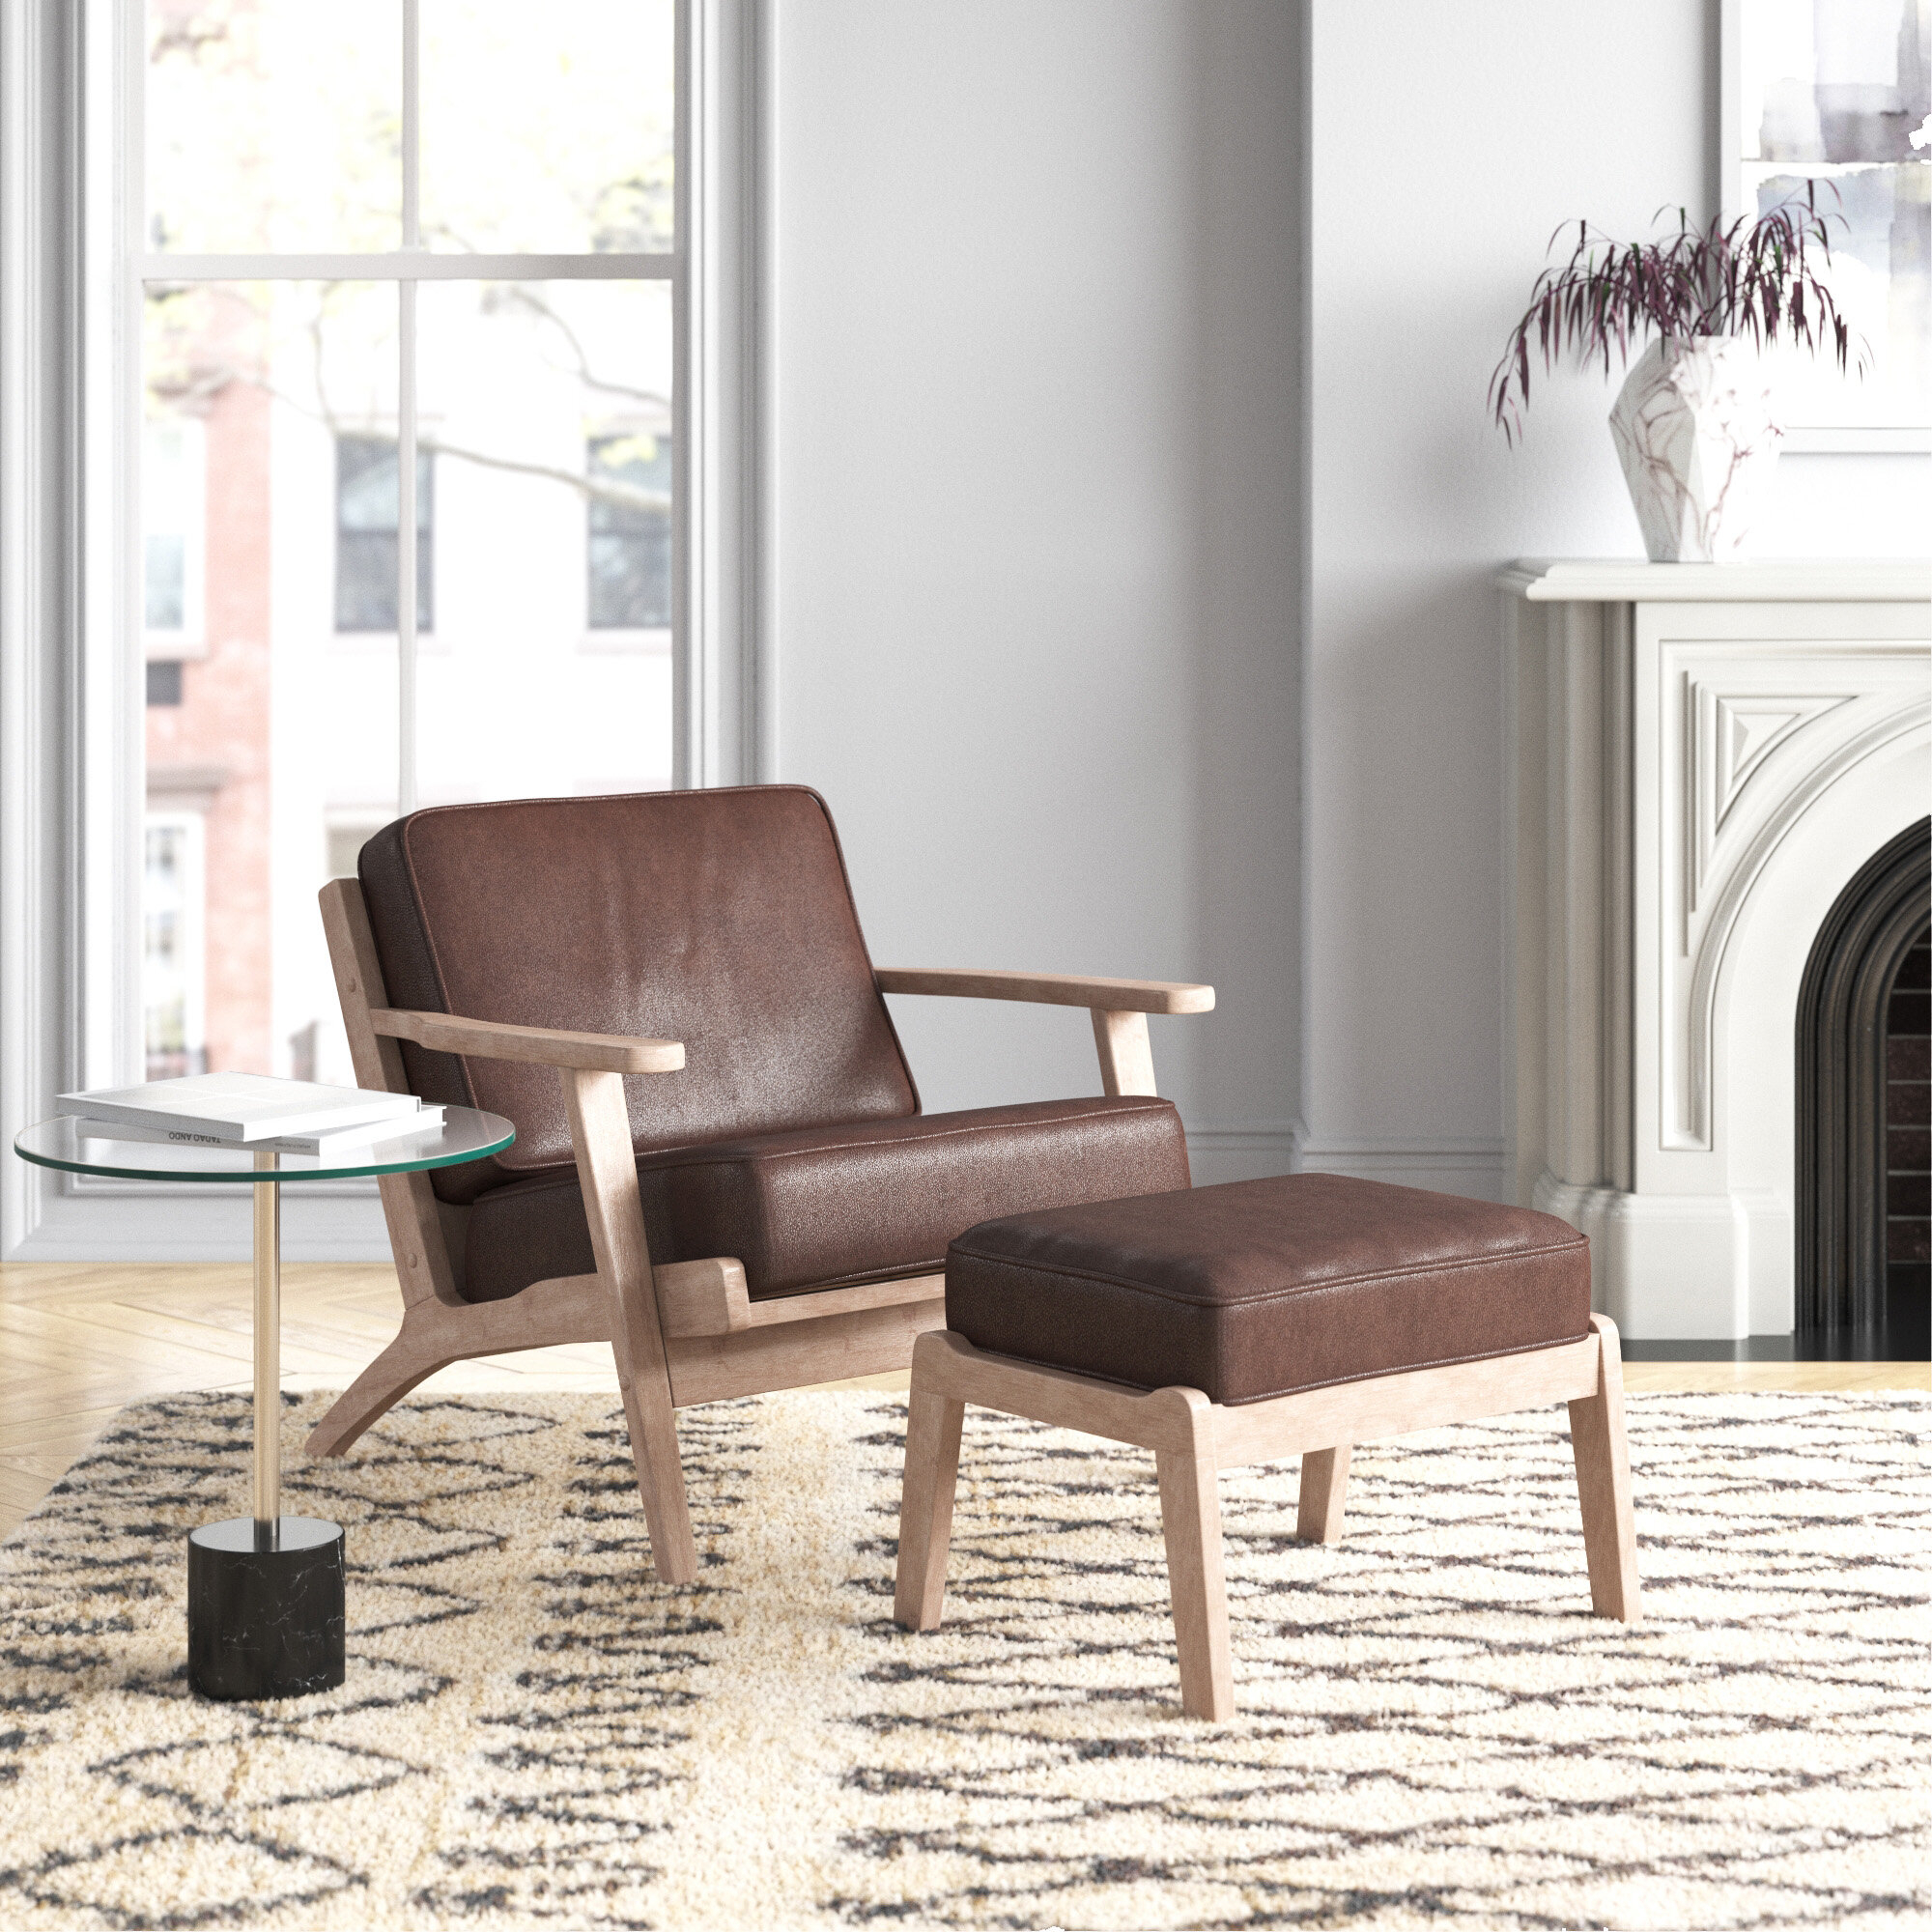 Adal Mid Century Modern Dark Brown Faux Leather Effect Fabric Upholstered Antique Oak Finished 2 Piece Wood Armchair And Ottoman Set For Modern Armchairs And Ottoman (View 9 of 15)